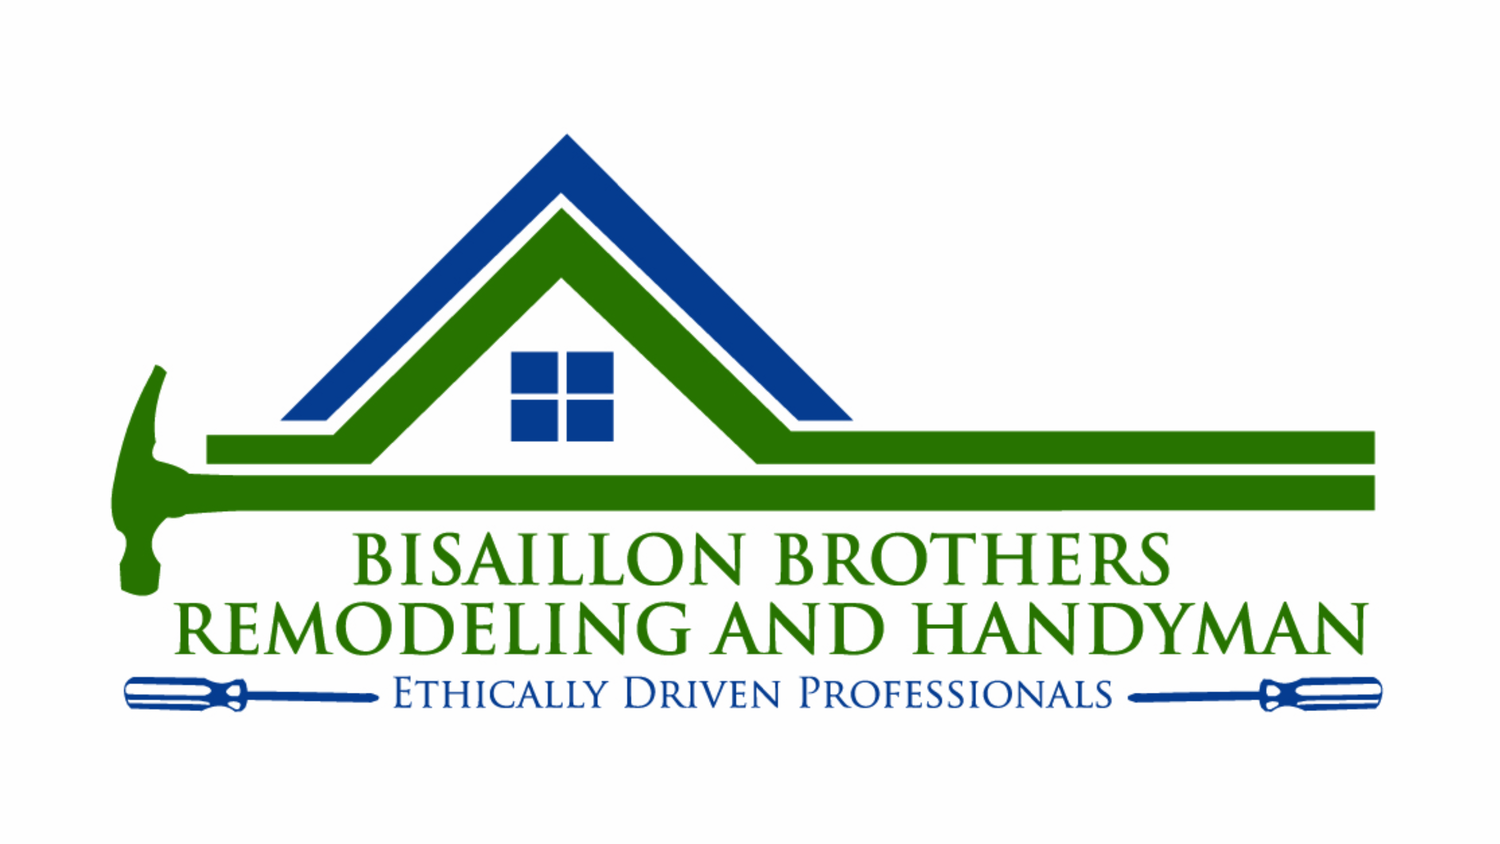 Bisaillon Brothers Handyman and Remodeling